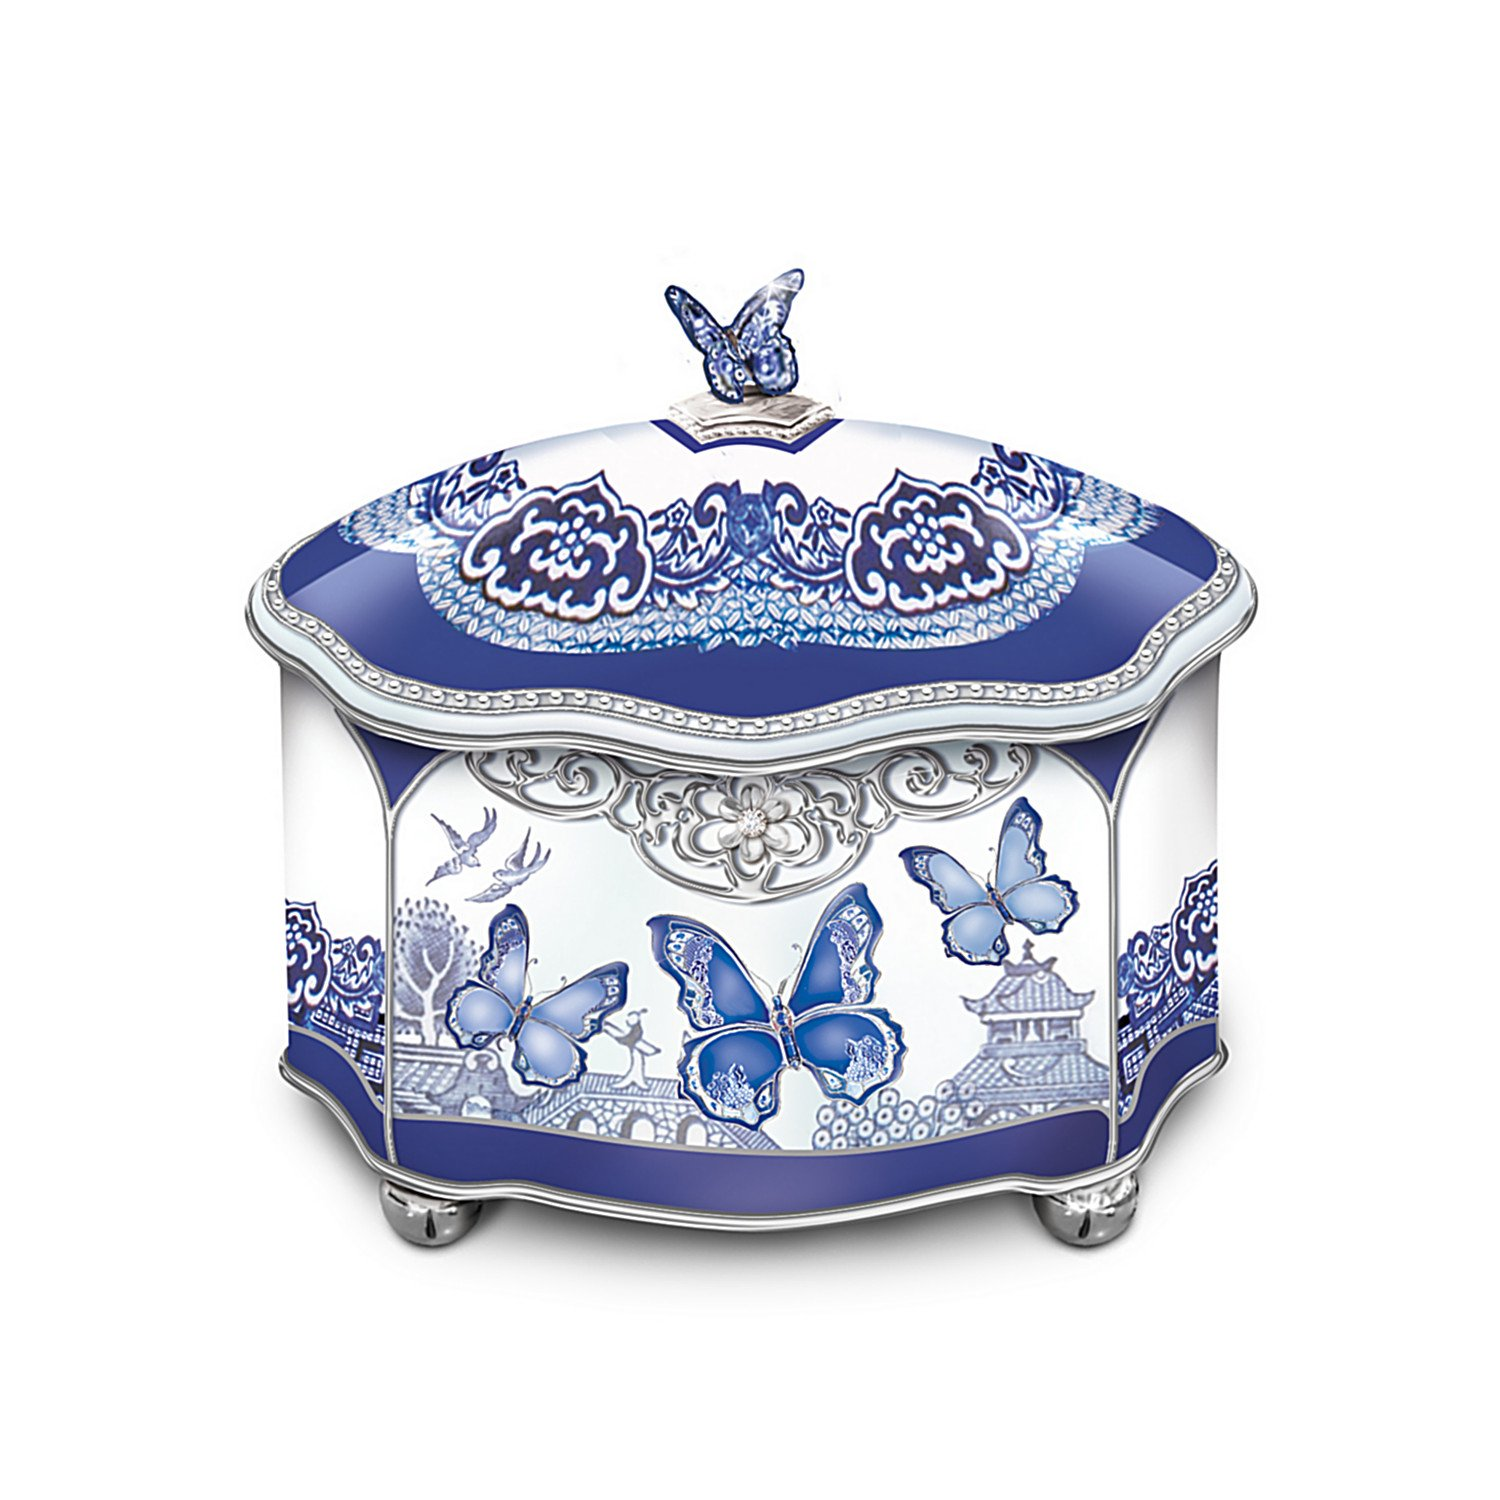 Blue Willow-Inspired Flights Of Love Heirloom Porcelain Butterfly Music Box by The Bradford Exchange